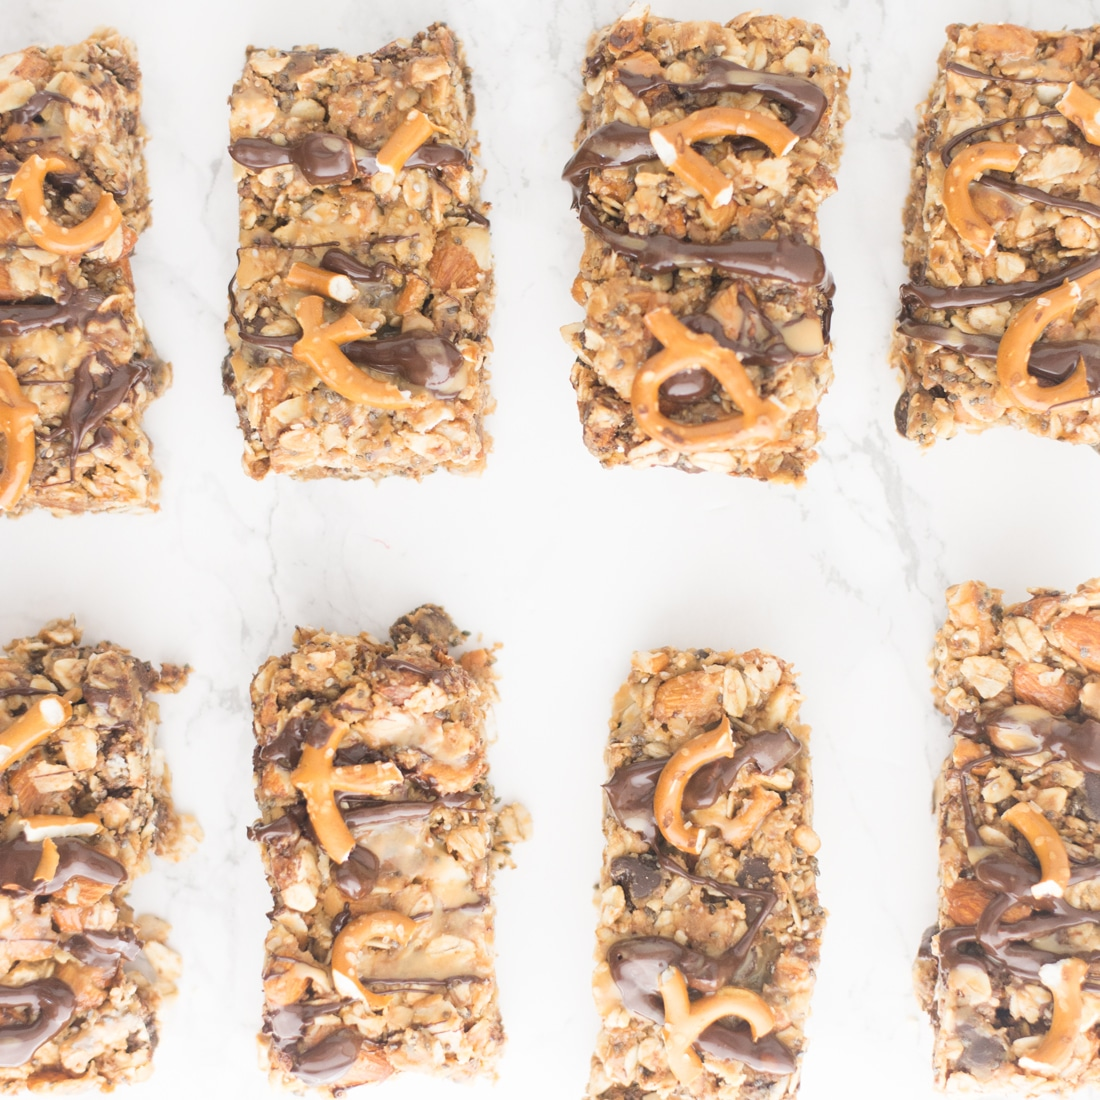 Chocolate Peanut Butter Pretzel Granola Bars